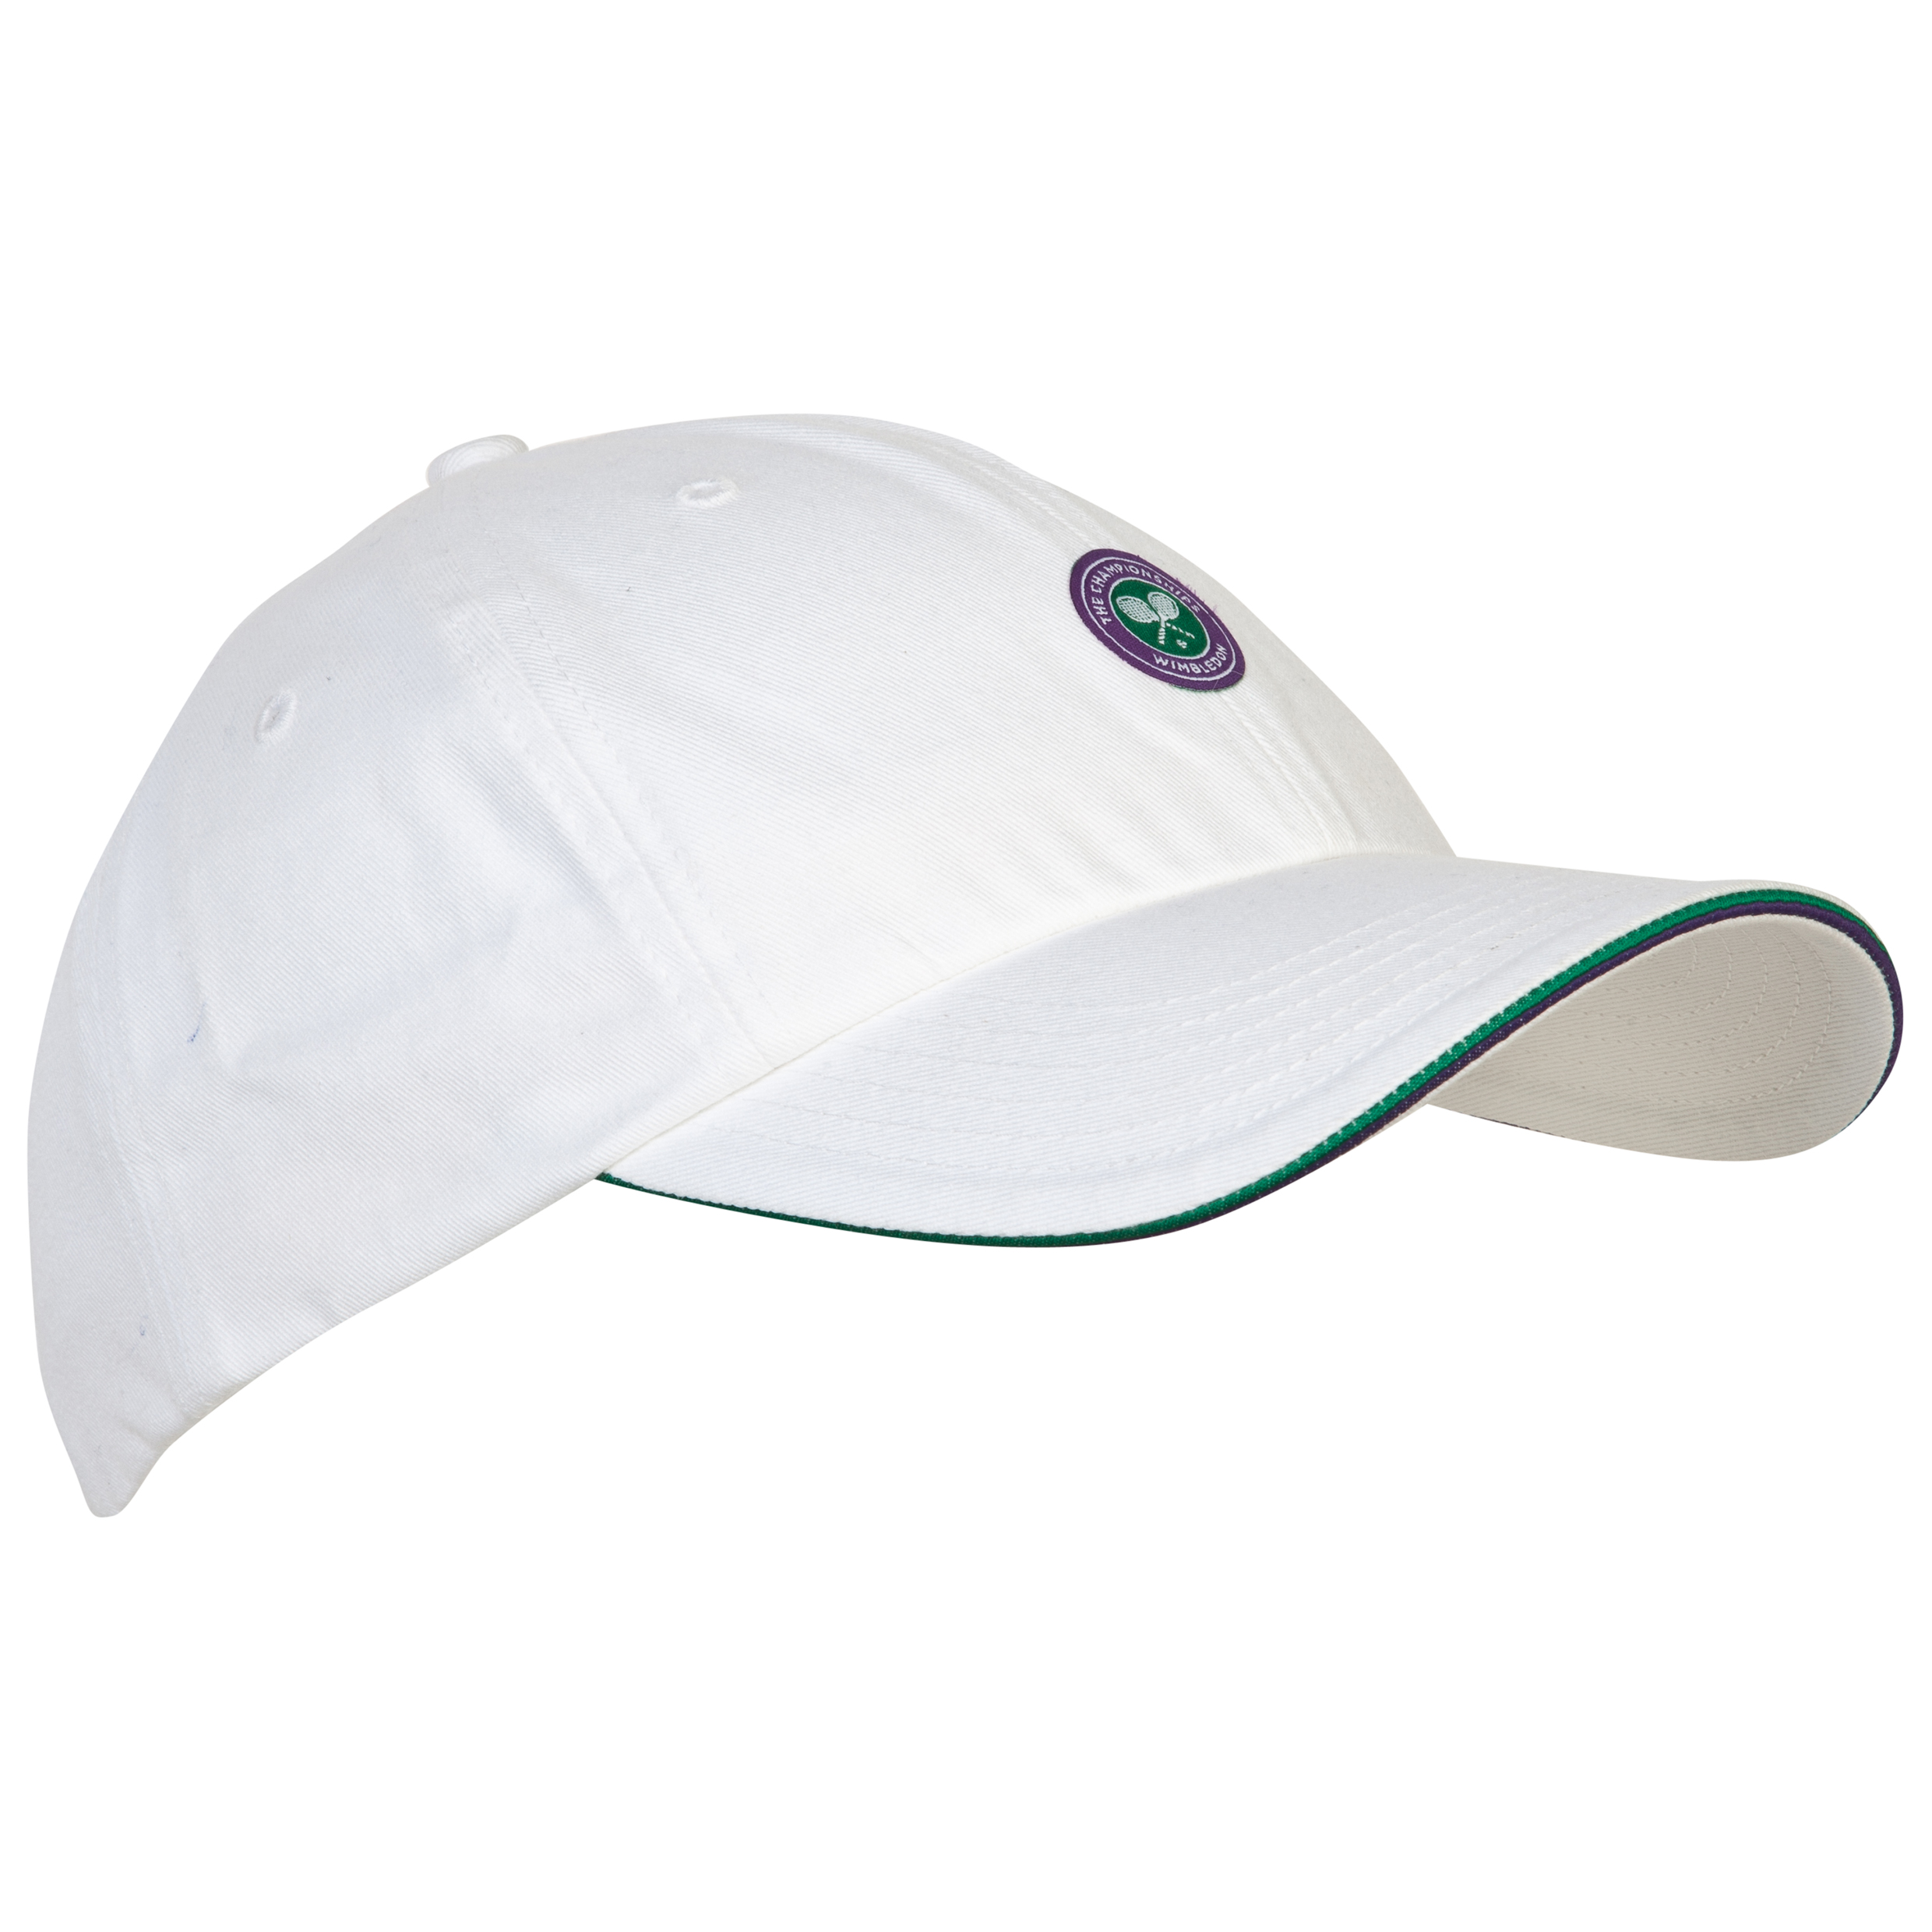 Wimbledon Adults Small Crossed Rackets Logo Cap White